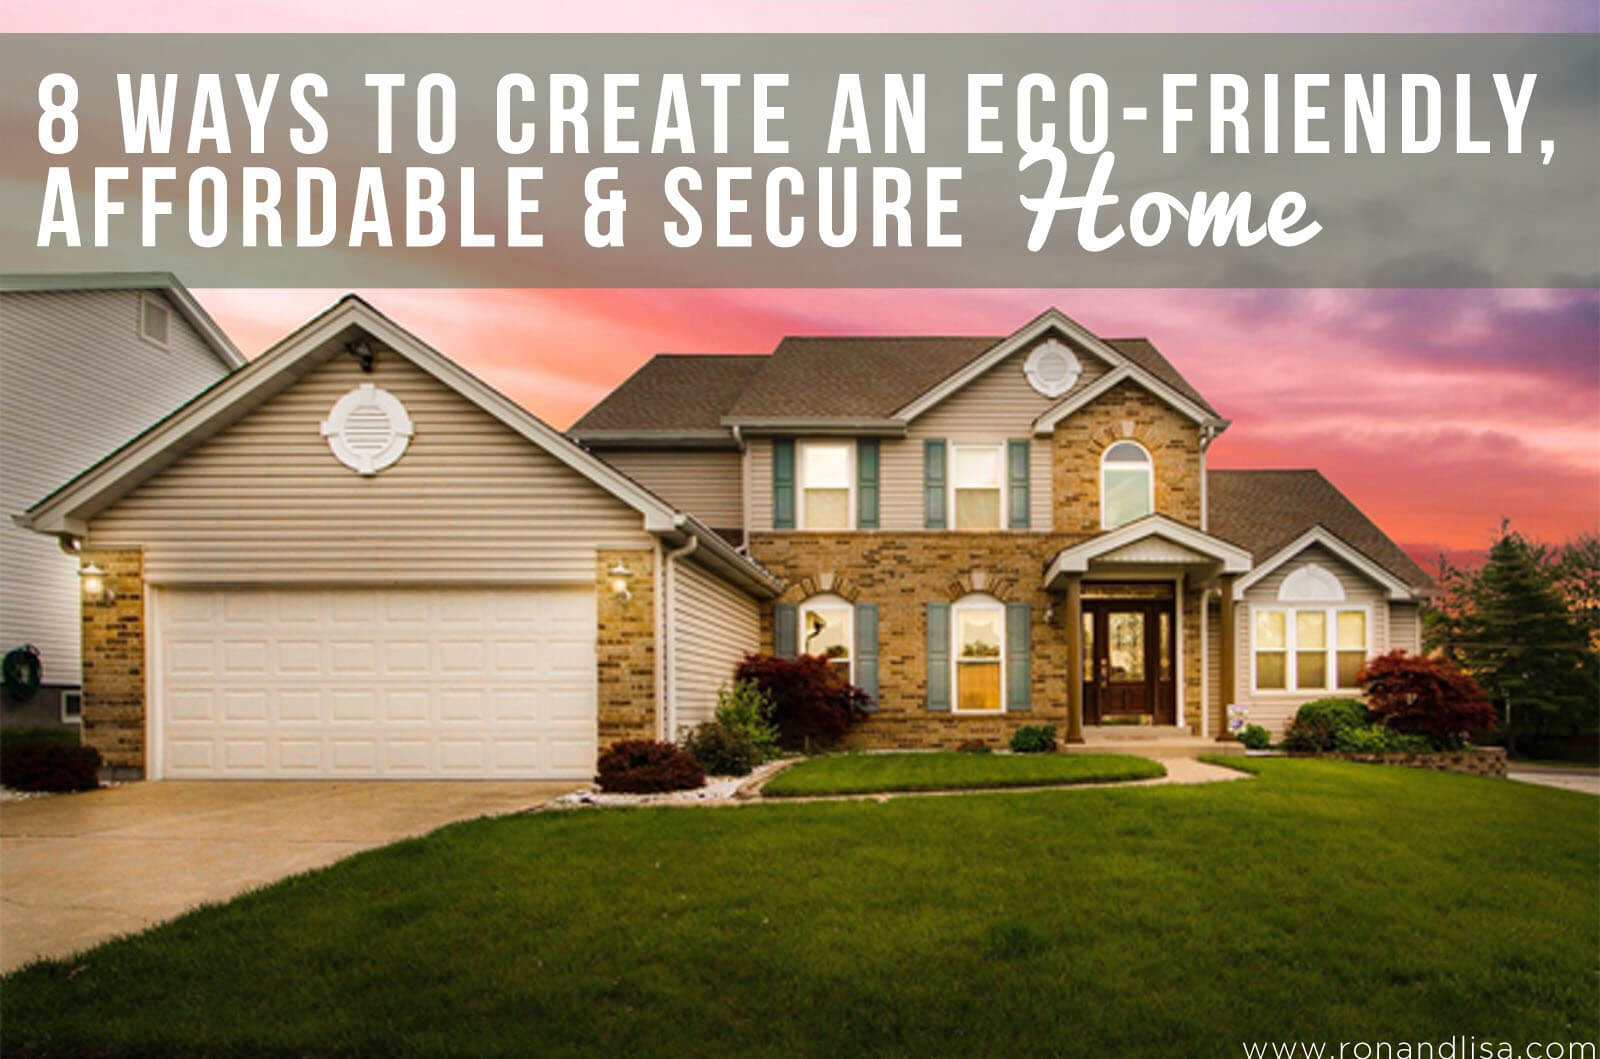 8 Ways to Create an Eco-Friendly, Affordable & Secure Home